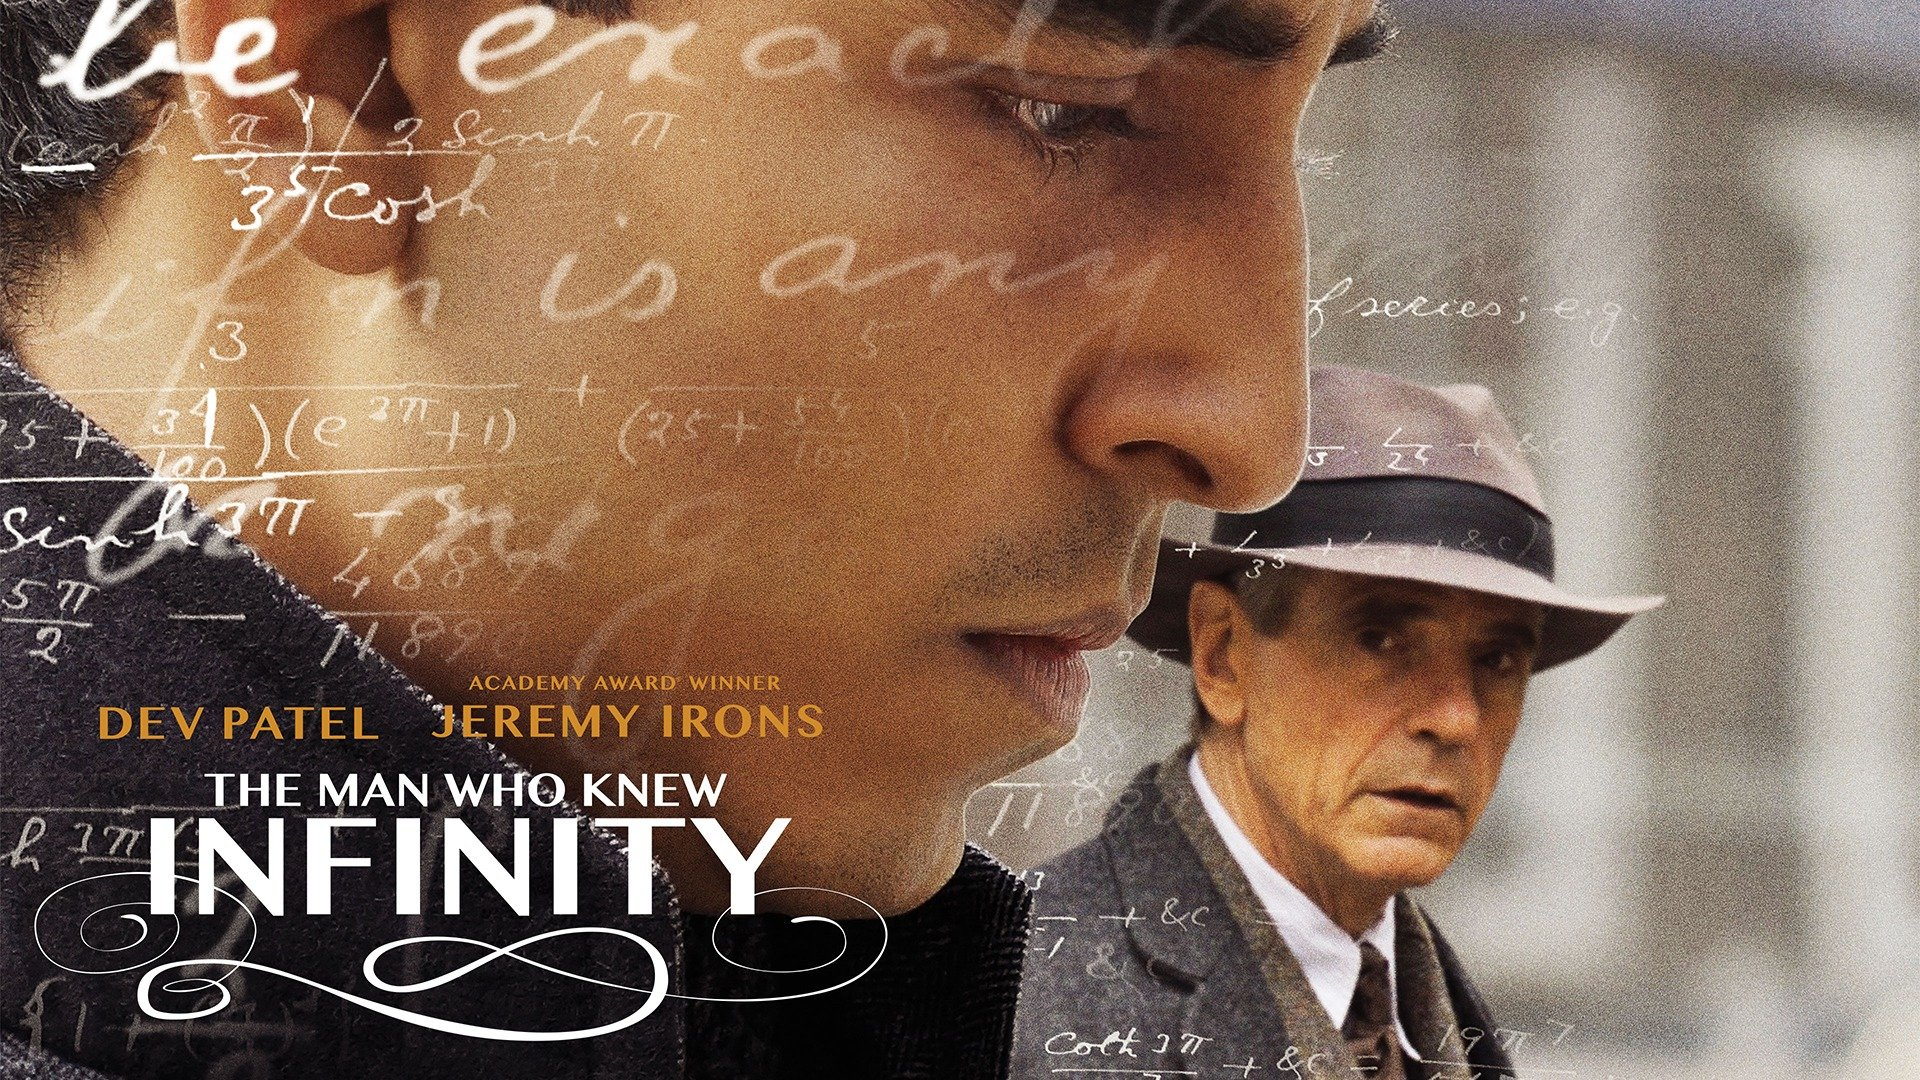 The Man Who Knew Infinity Movietickets